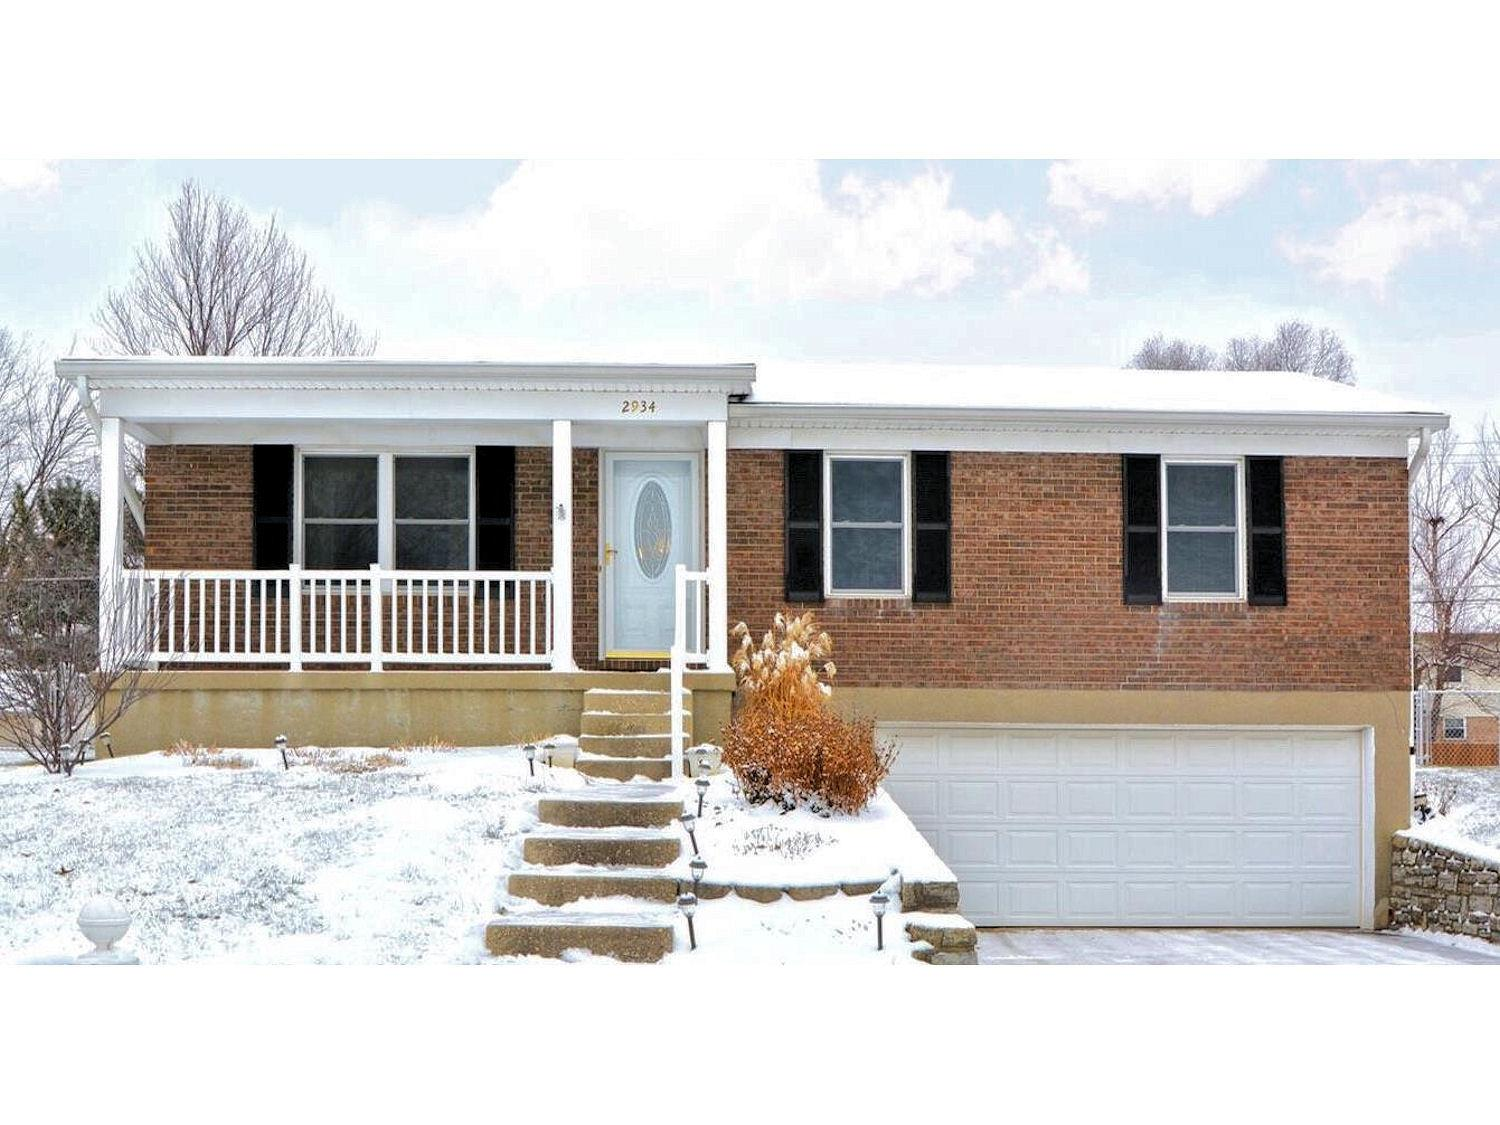 2934 Regal Lane, Colerain Twp, OH 45251